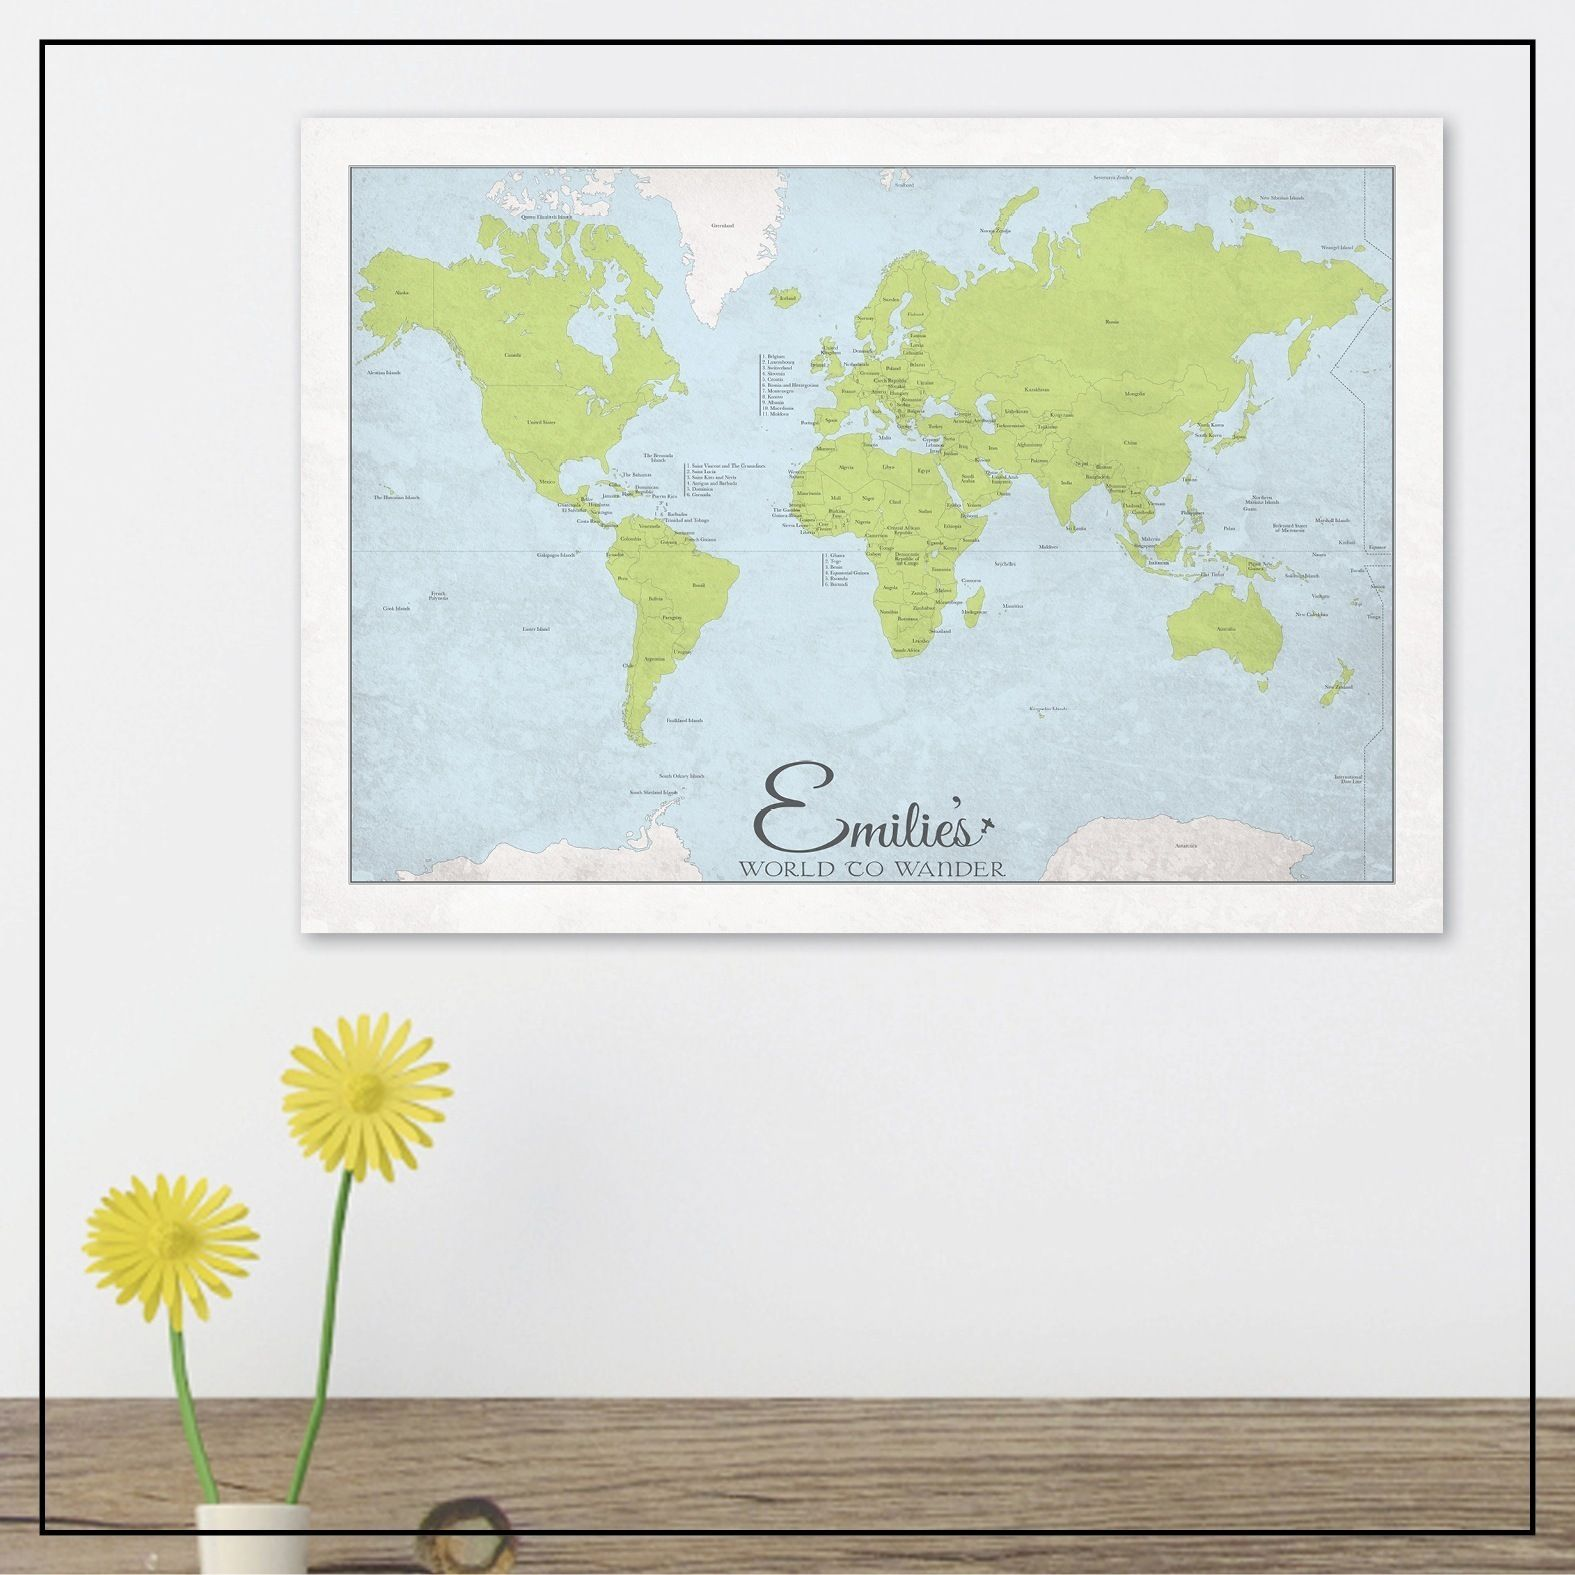 Home interior design maps custom world to wander map by may and belle  kids activity room